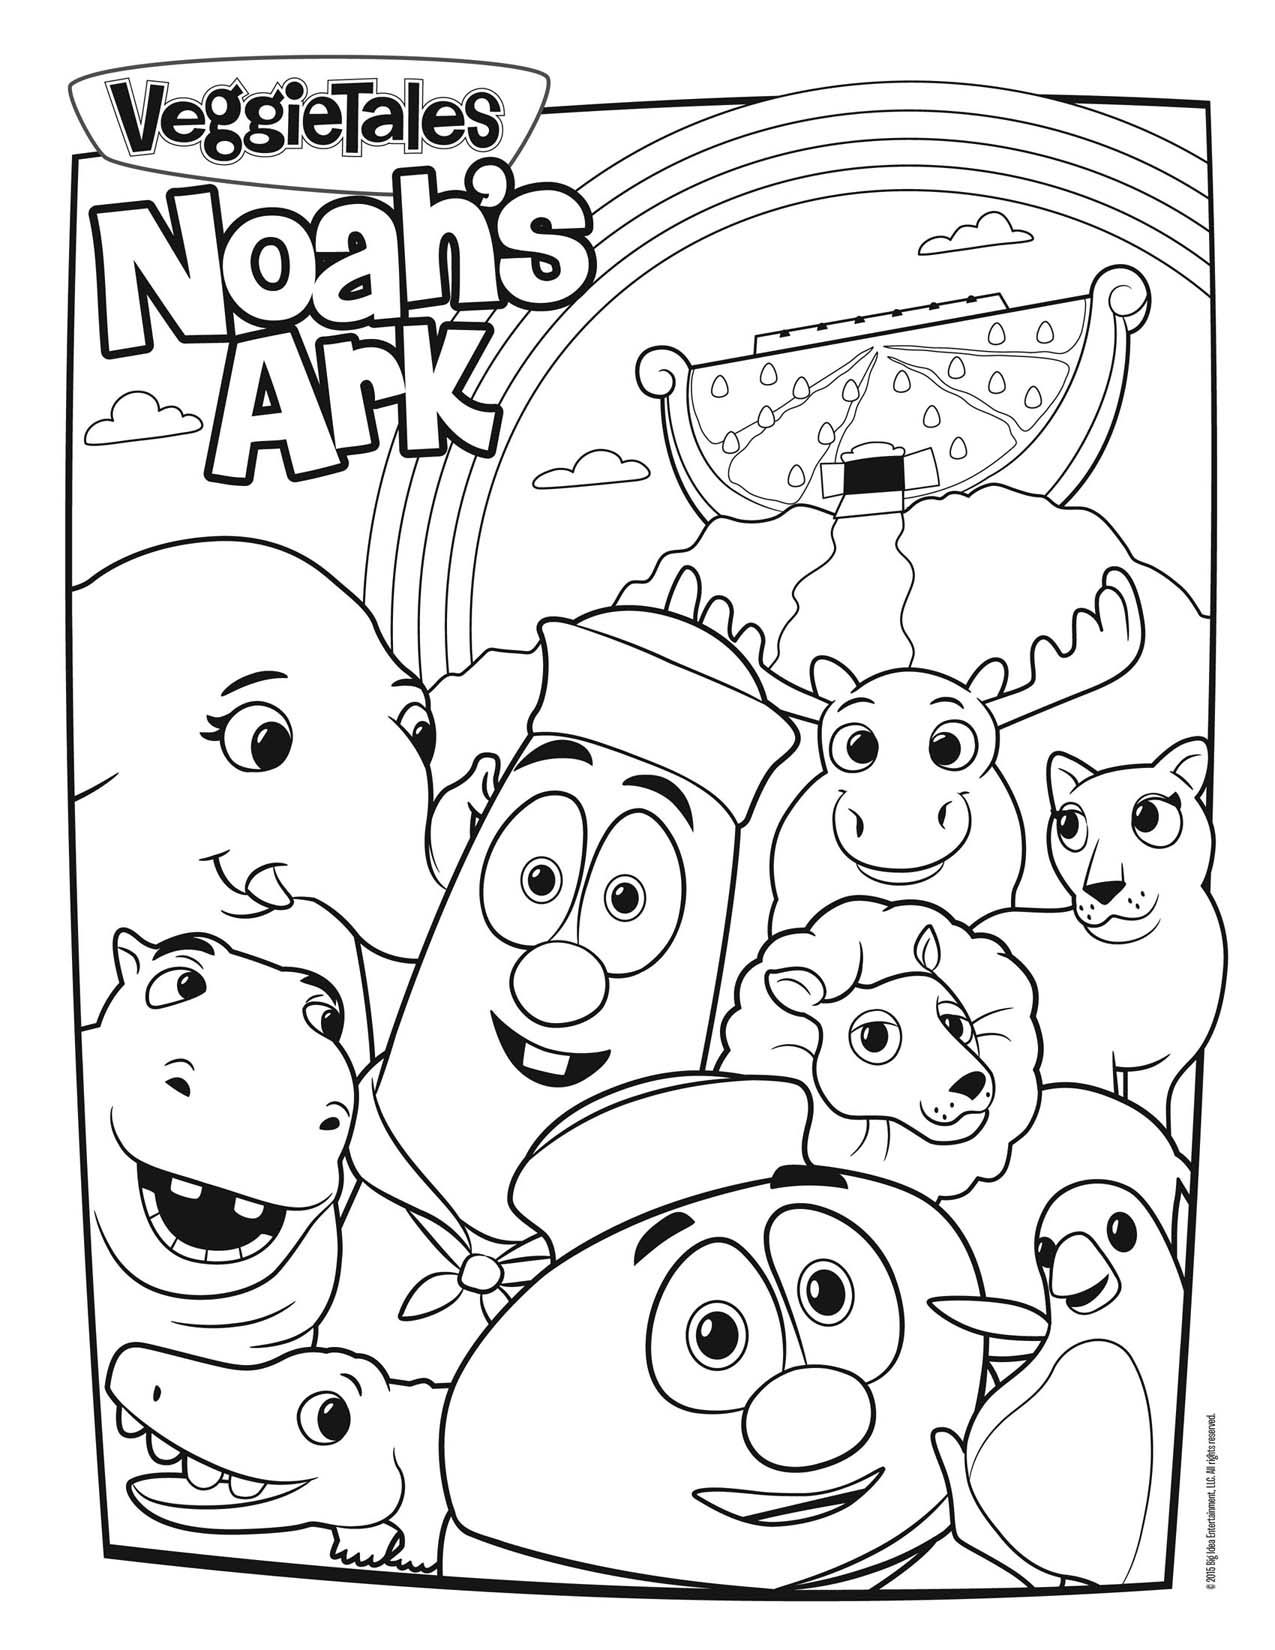 veggietales coloring sheets get this veggie tales coloring pages free printable u043e coloring veggietales sheets